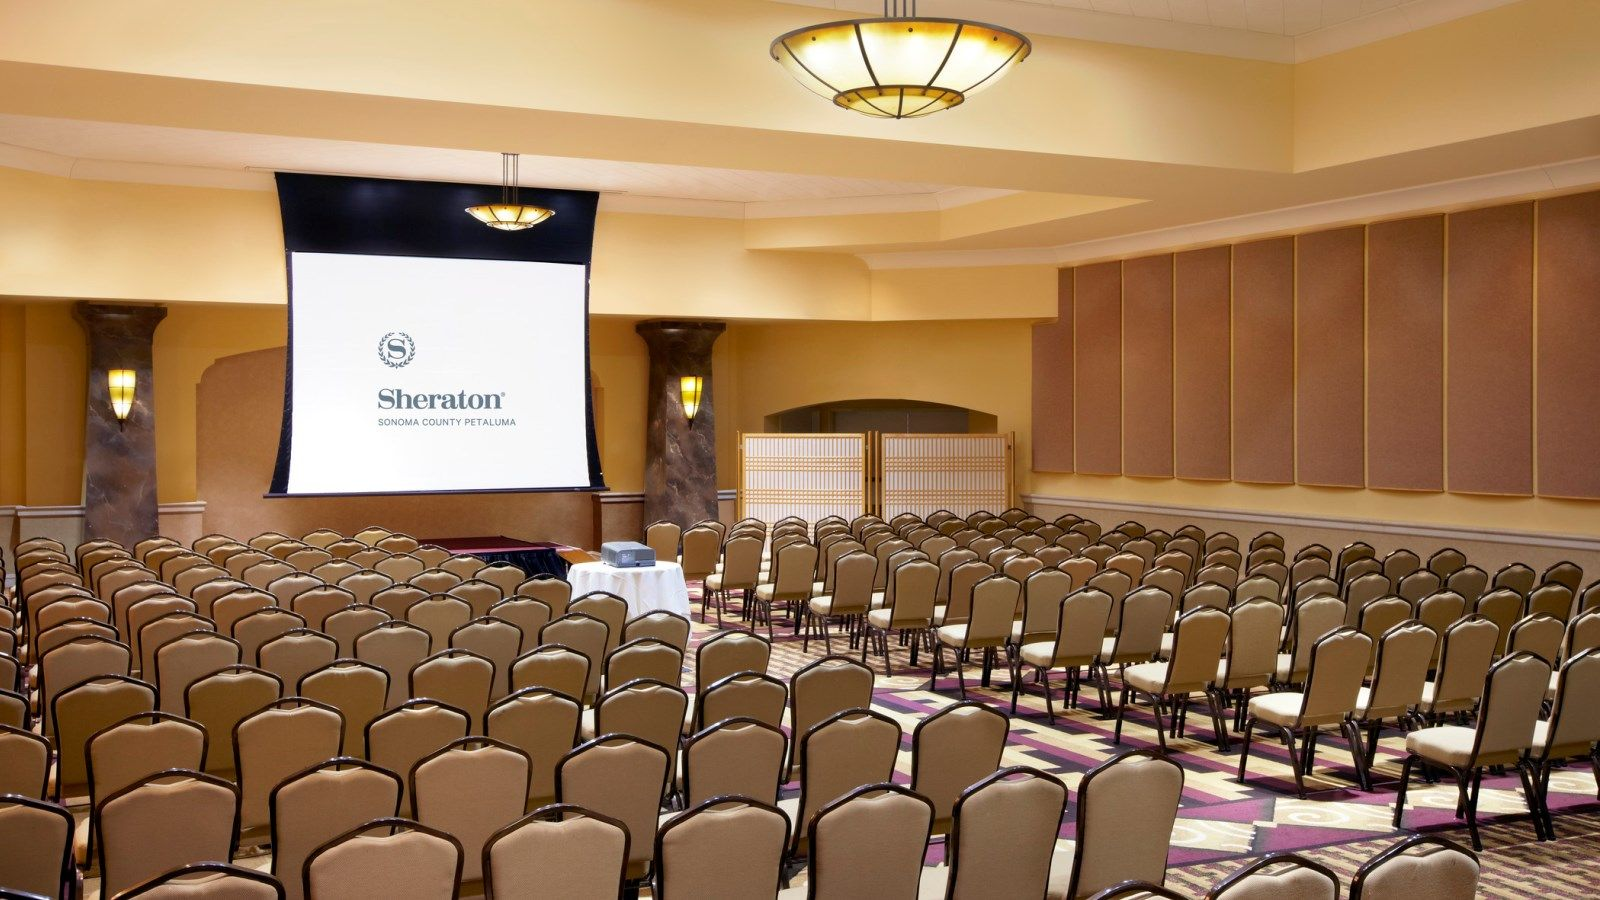 Sheraton Sonoma County - Petaluma - Meetings